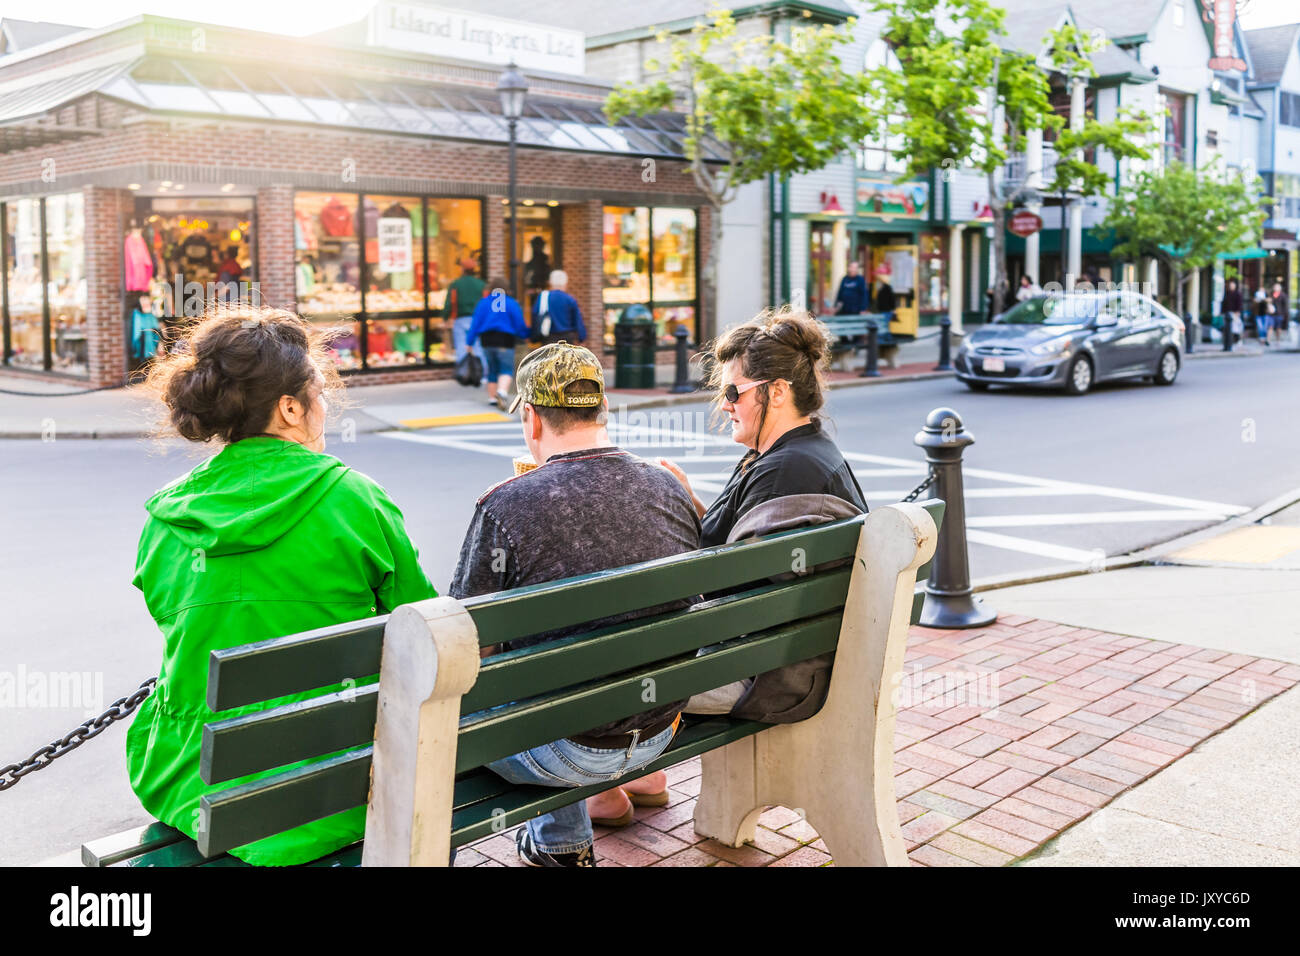 Bar Harbor, USA - June 8, 2017: People on benches in Maine downtown village in summer evening eating ice cream - Stock Image